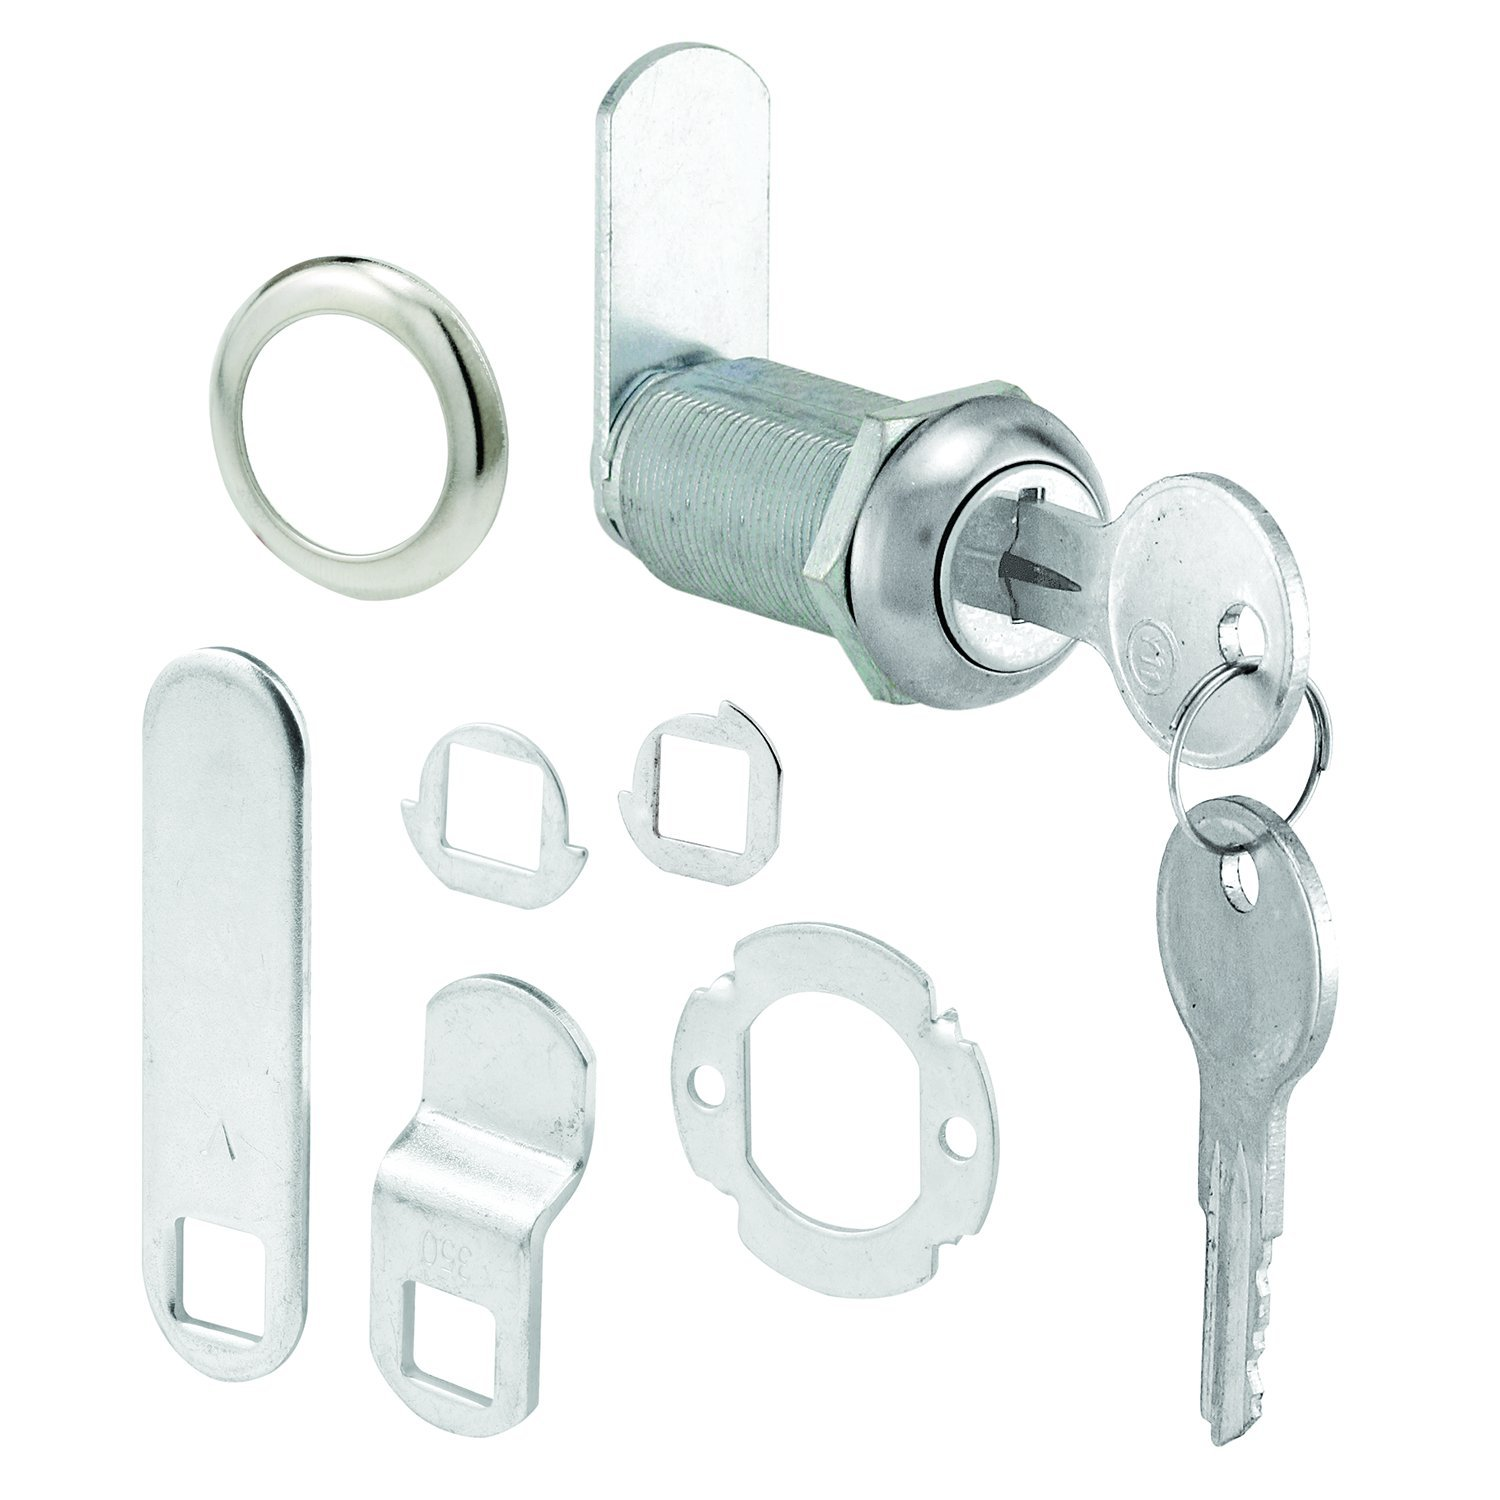 Prime-Line Products U 9950 Drawer & Cabinet Lock, 1-3/8 in., Stainless Steel Face, 1 in. Max. Panel